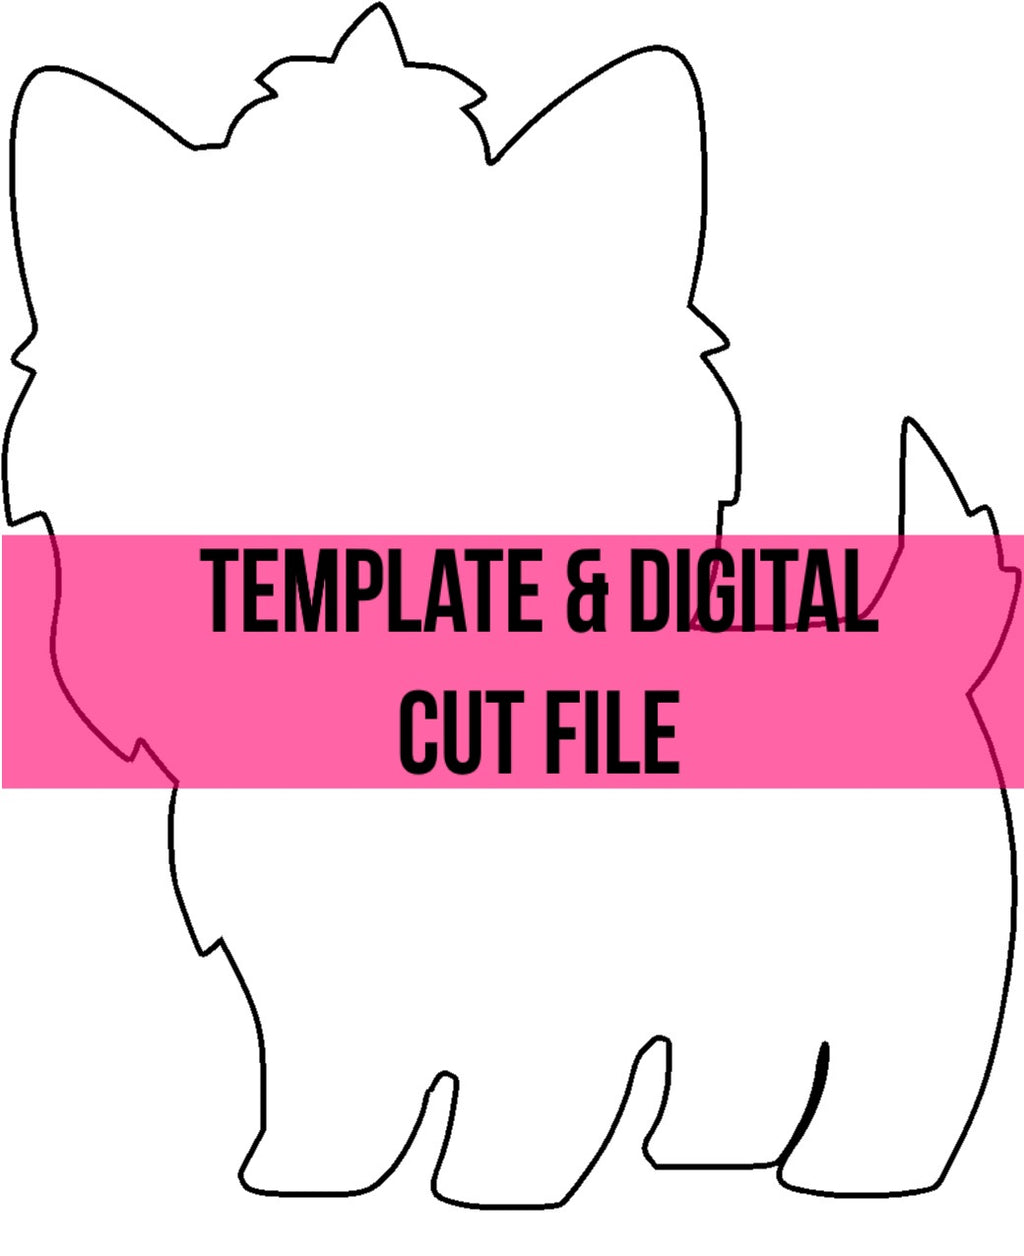 Yorkie Template & Digital Cut File